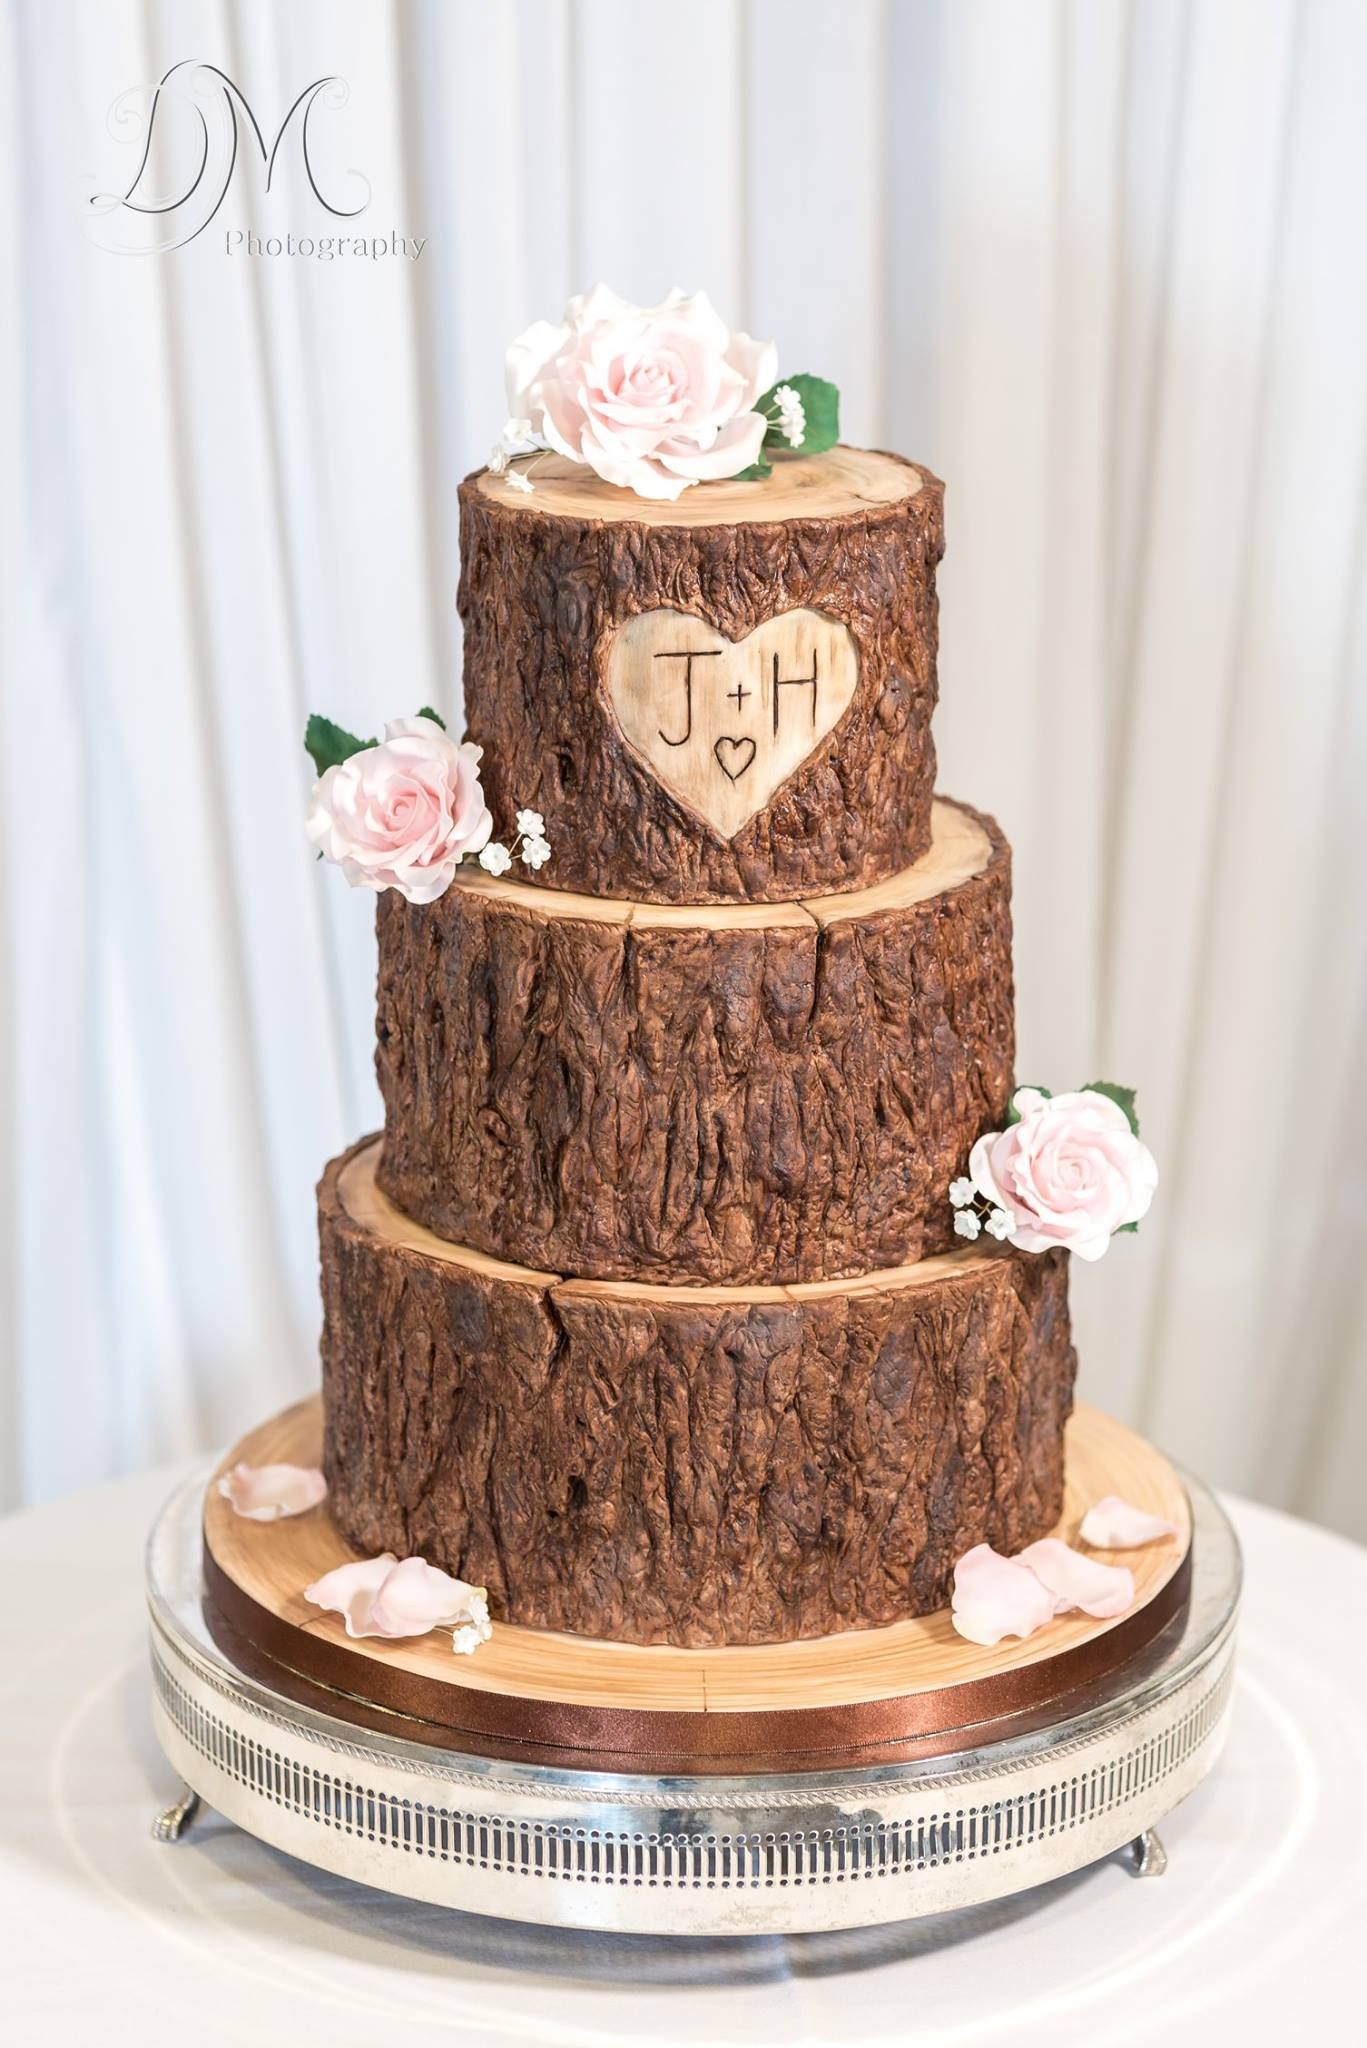 Wood / tree stump effect wedding cake | Cake Ideas | Pinterest ...